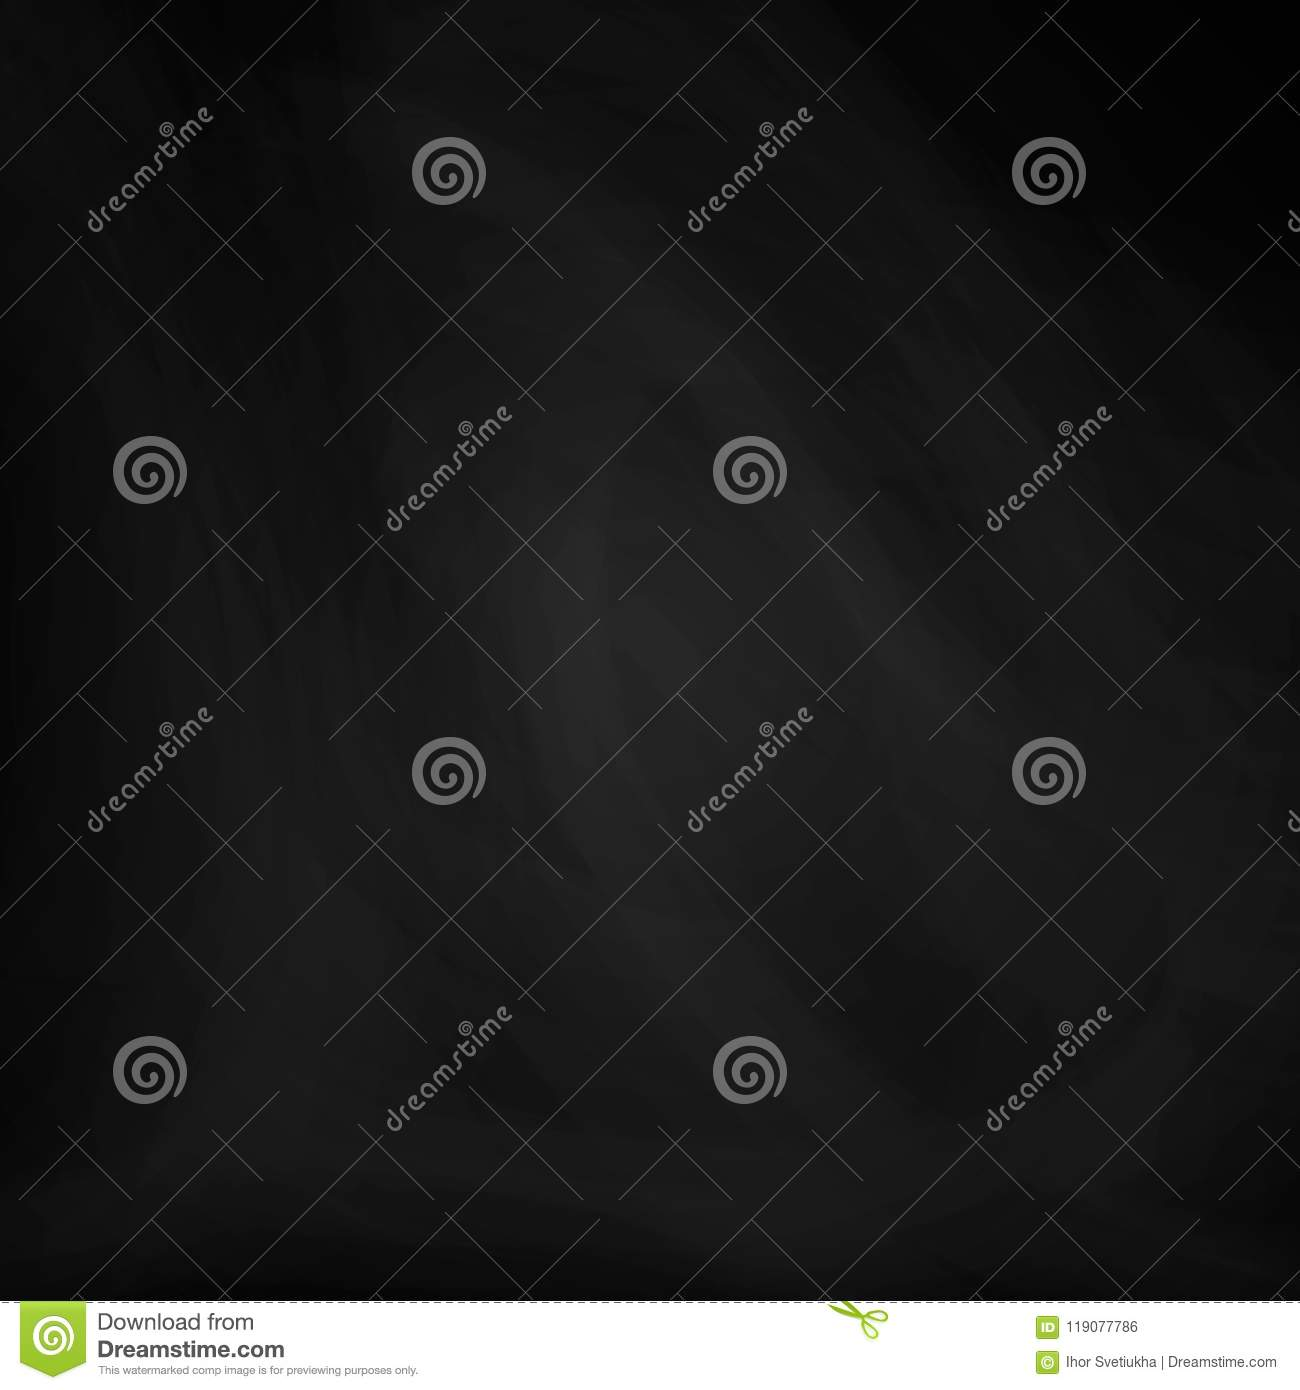 chalkboard black texture background for a banner on the theme of